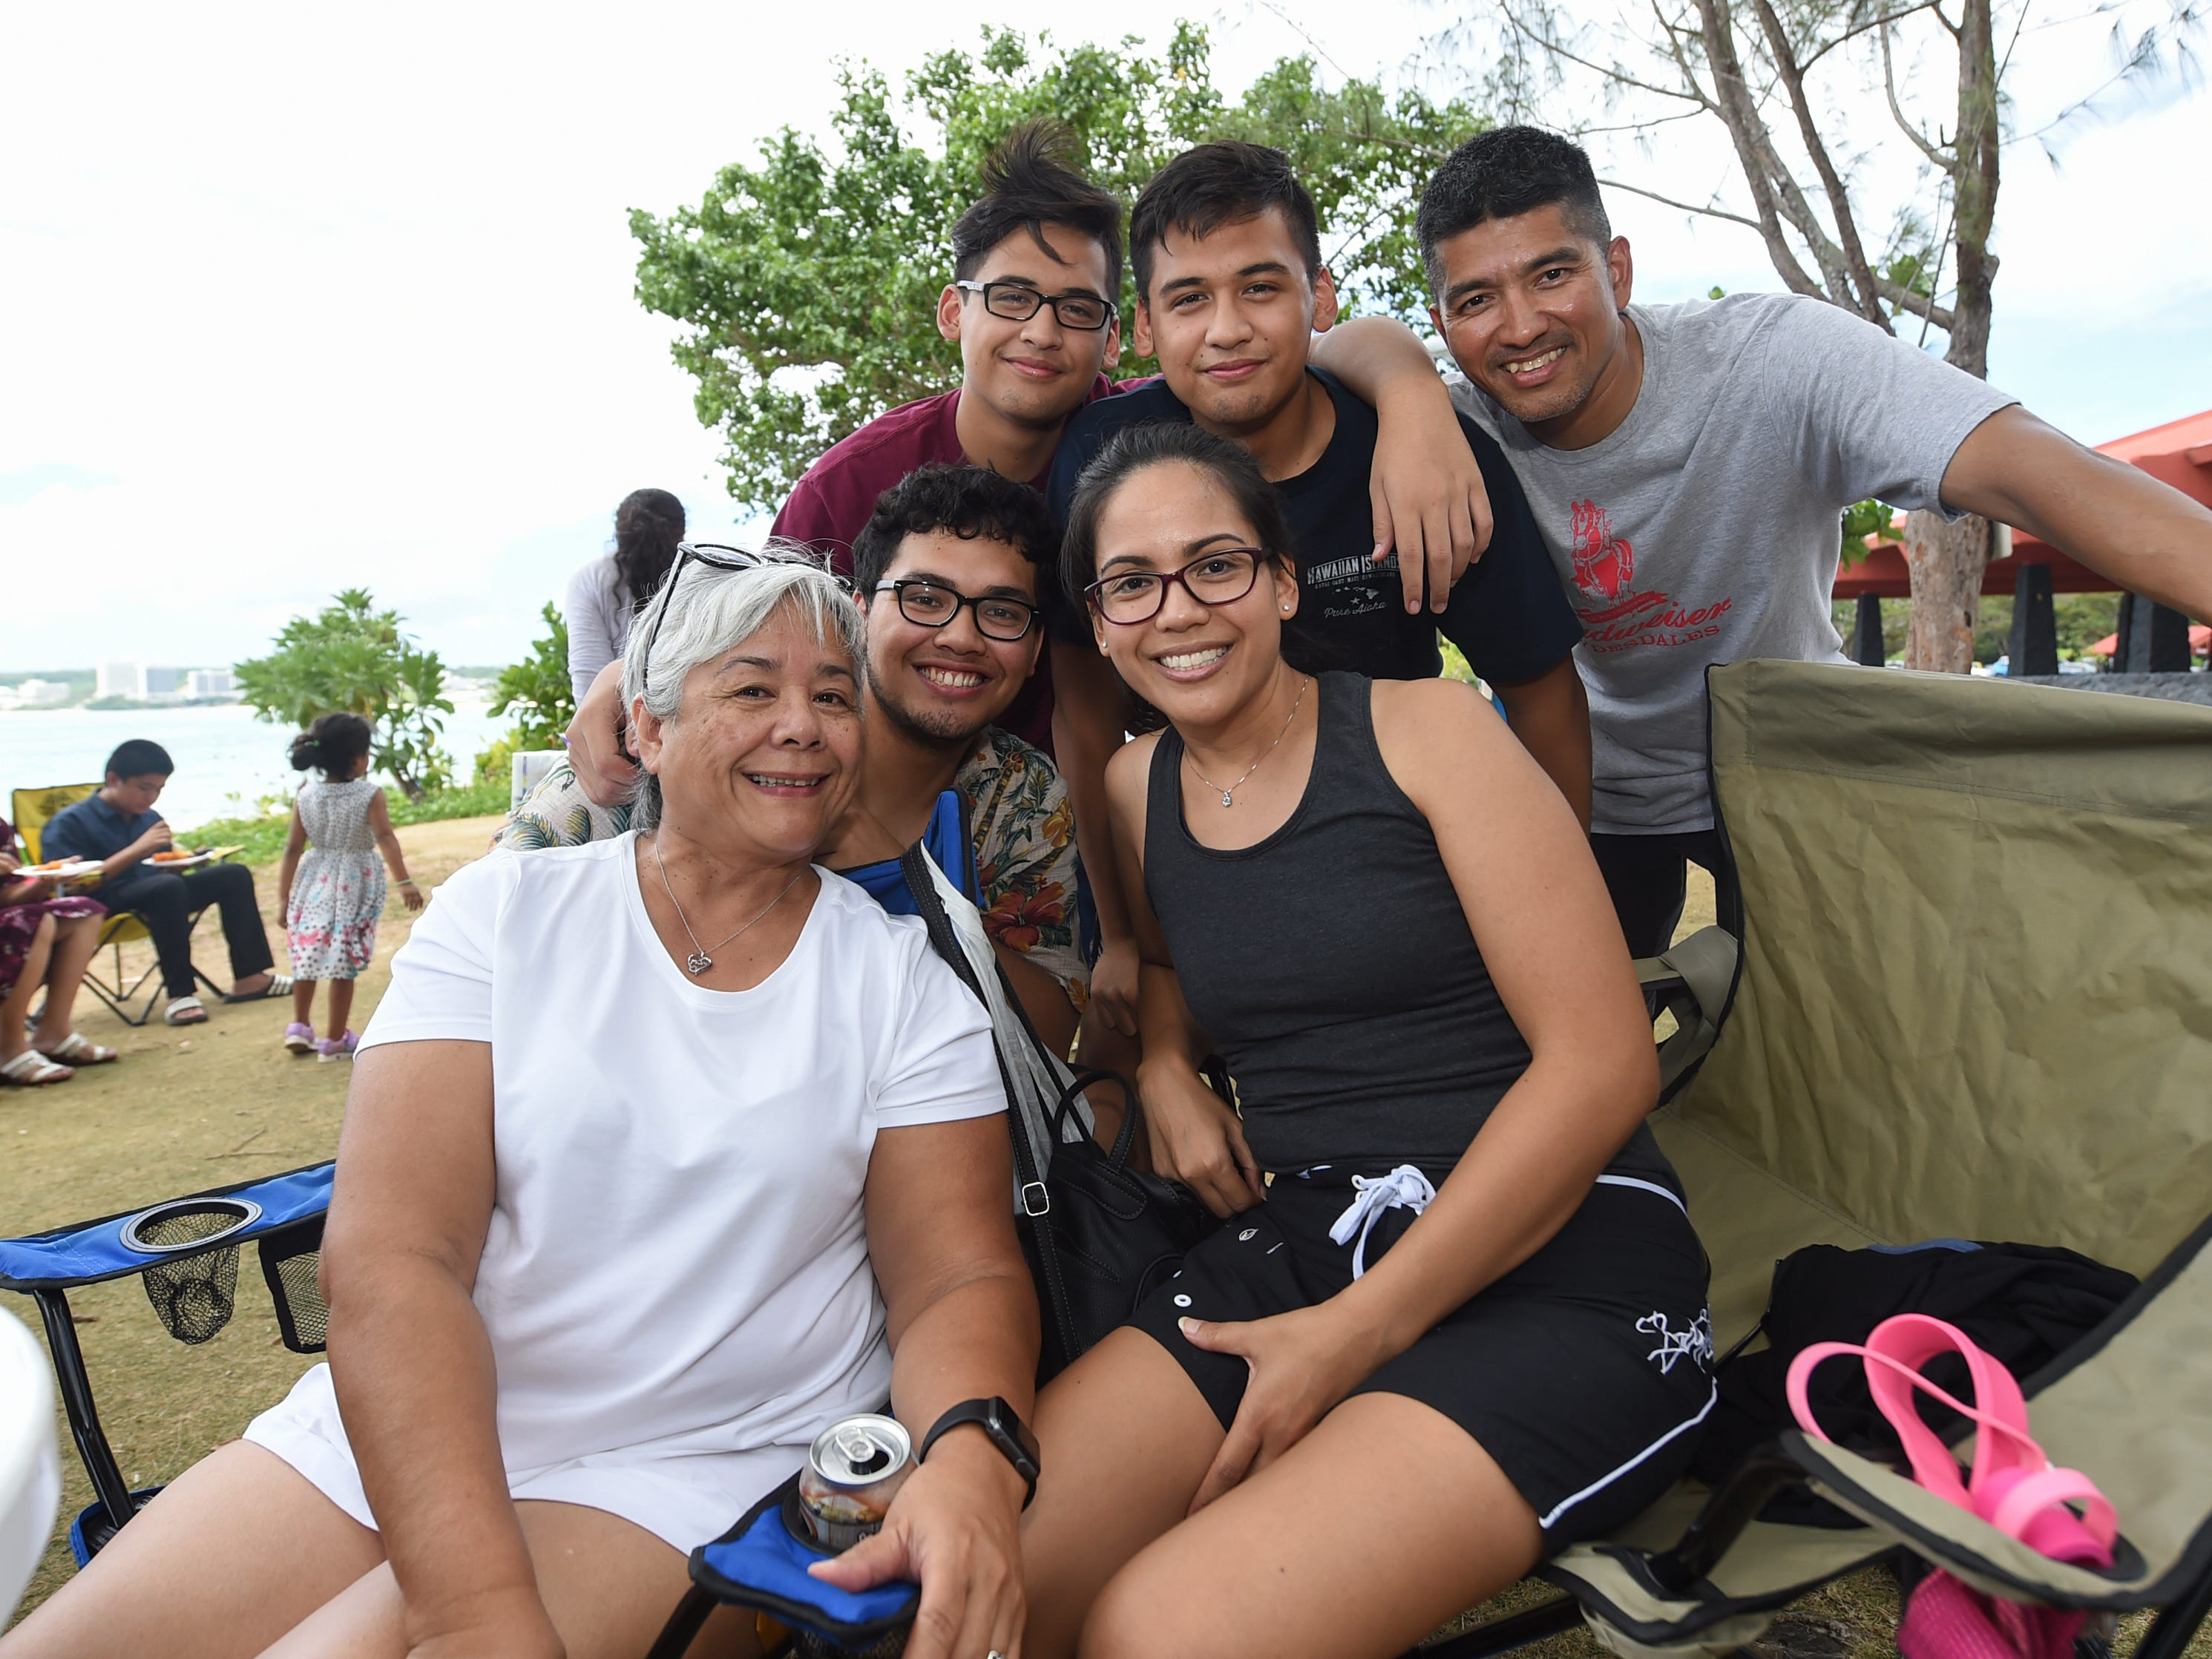 Families gather at the Gov. Joseph Flores Beach Park in Tumon to spend Mother's Day with their loved ones on May 12, 2019. Top row from left: Damien Dela Cruz, Dillen Dela Cruz, and Daniel Dela Cruz. Bottom row from left: Julia Pocaigue, Darien Dela Cruz, and Deidra Dela Cruz.